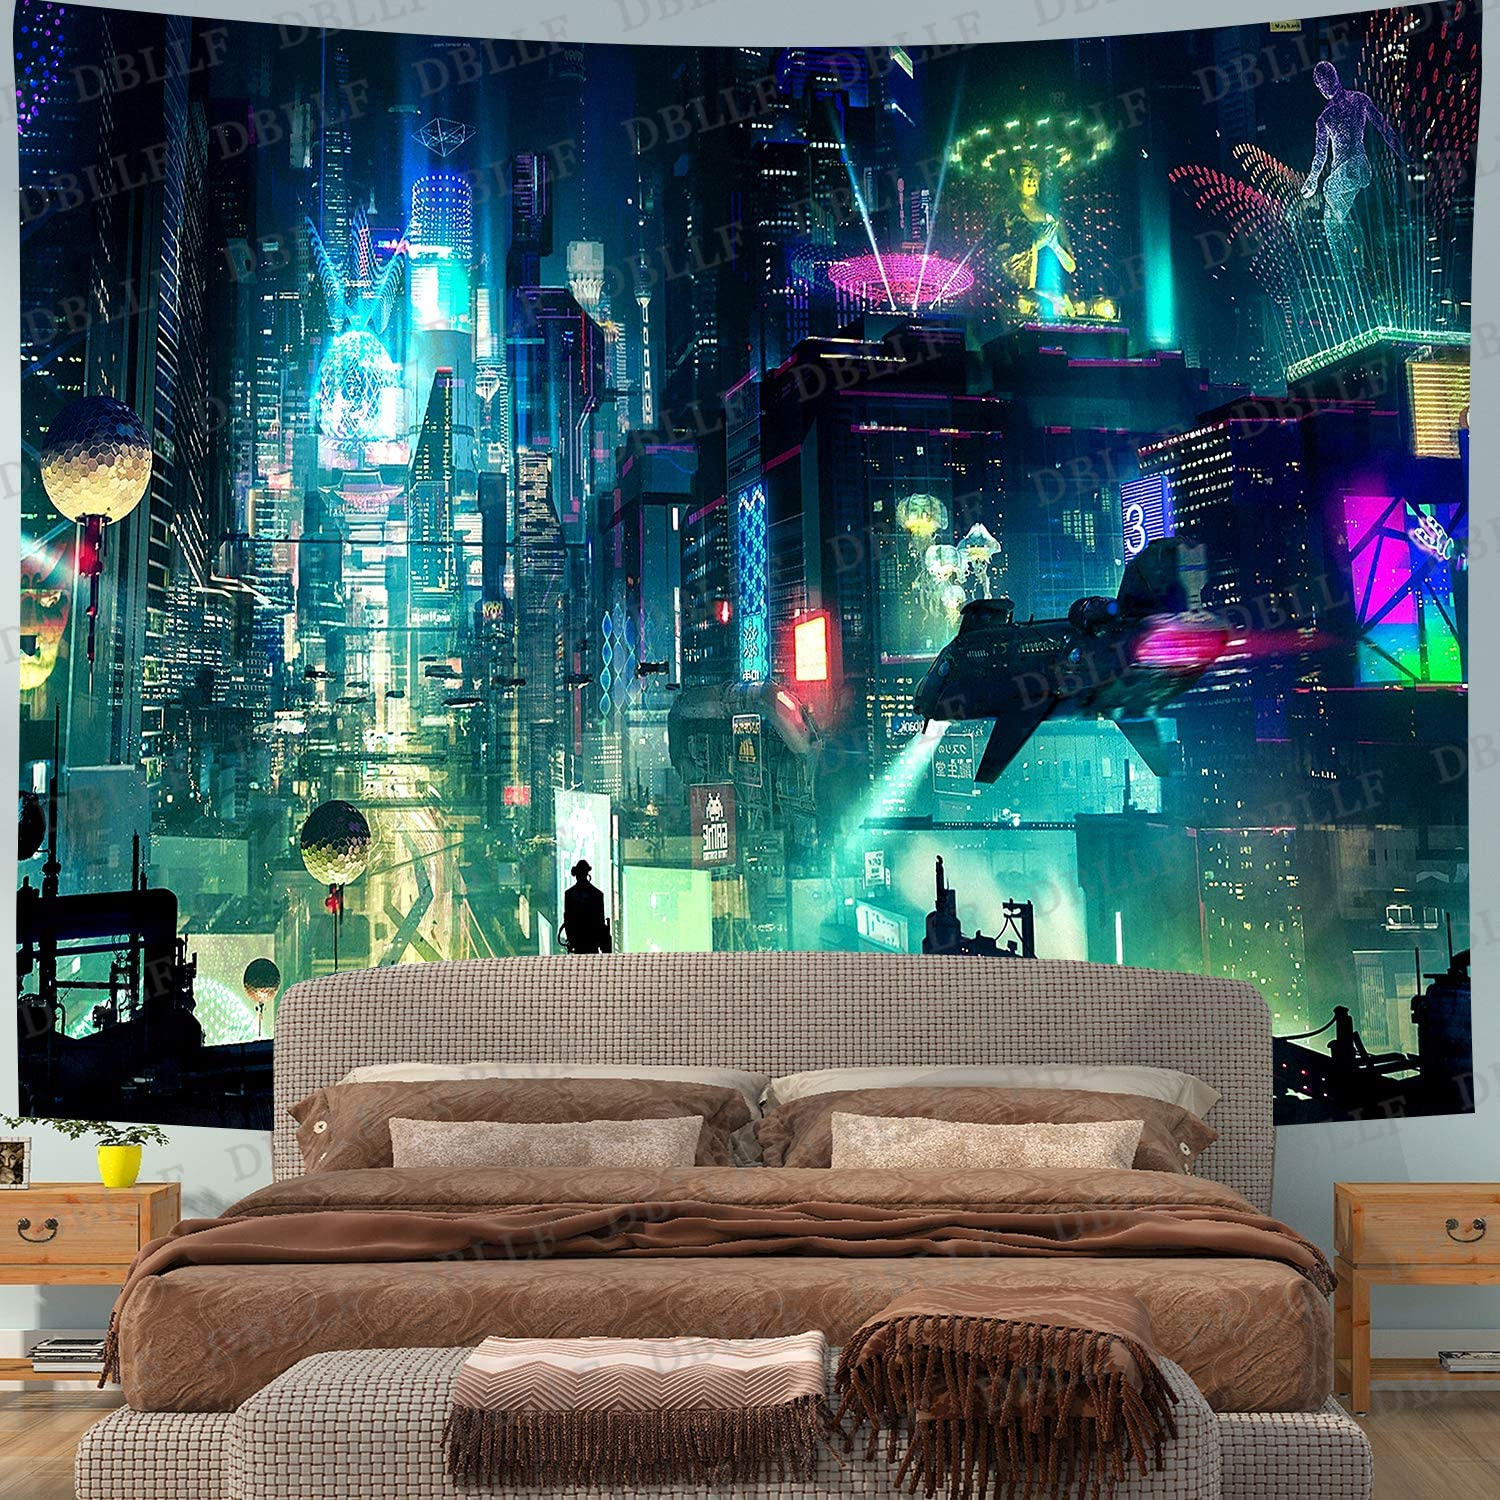 """DBLLF Fantasy Cyber-Punk Cityscape Futuristic Tapestry Wall Hanging Tapestries Black & White Wall Blanket Wall Art Home Decor,Queen Size 80""""x60"""",for Living Room Dorm Bedroom Home Decorations DBZY1769"""